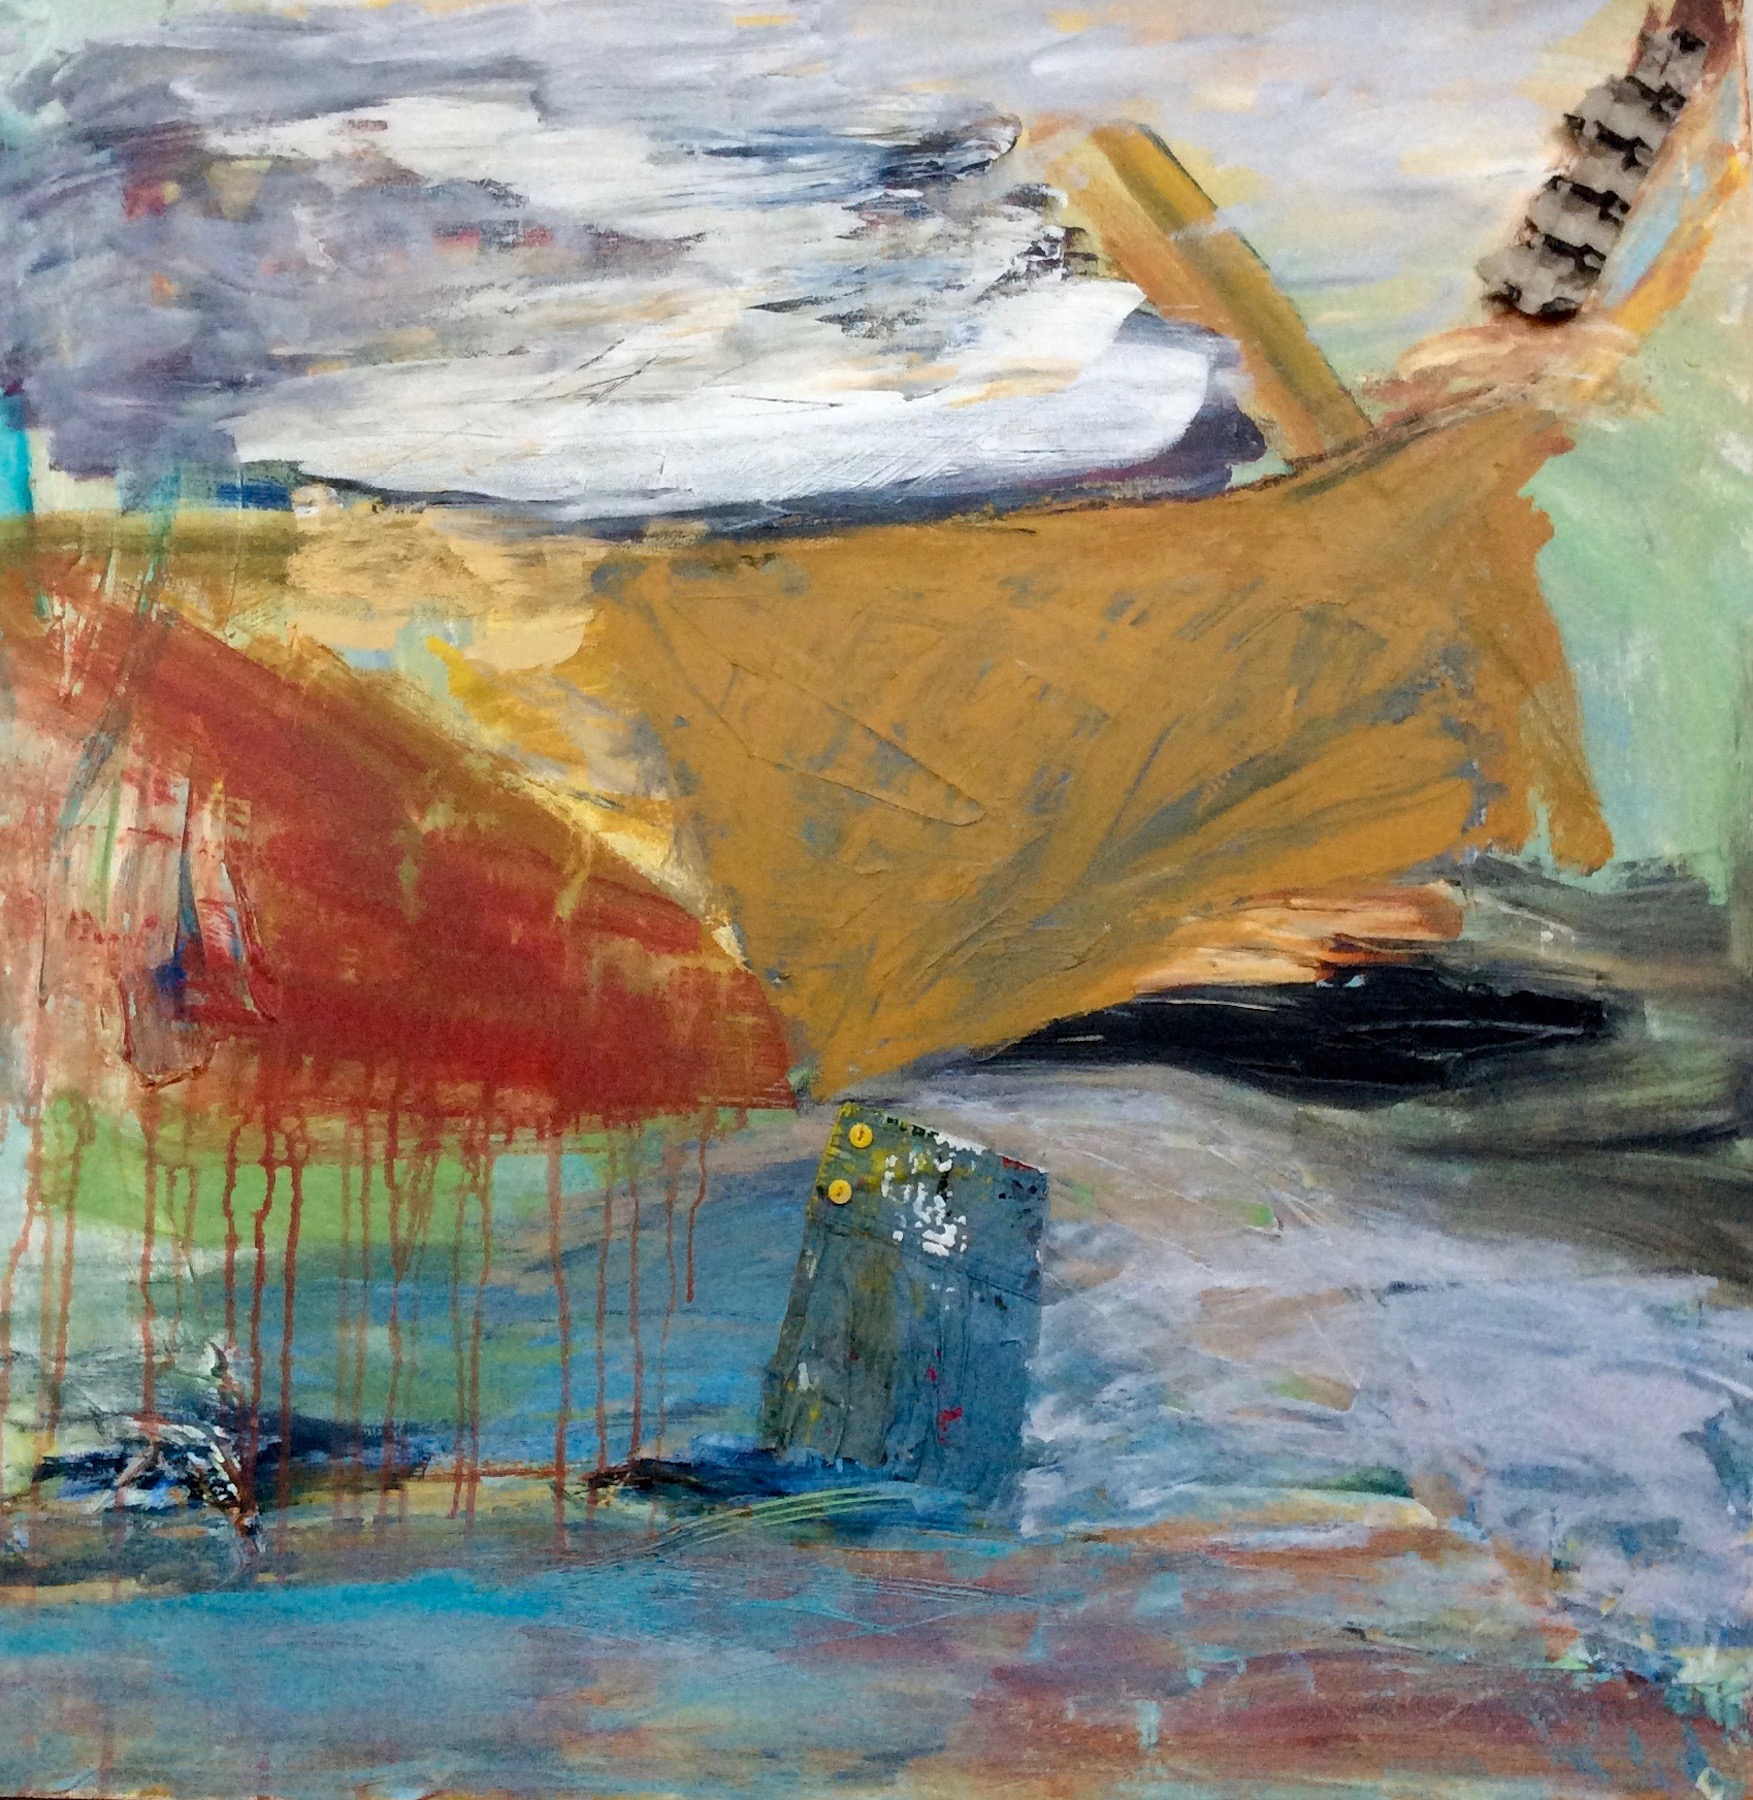 Refugee Ship with Shirtcuff , acrylic, mixed media on canvas, 36 x 36 inches,